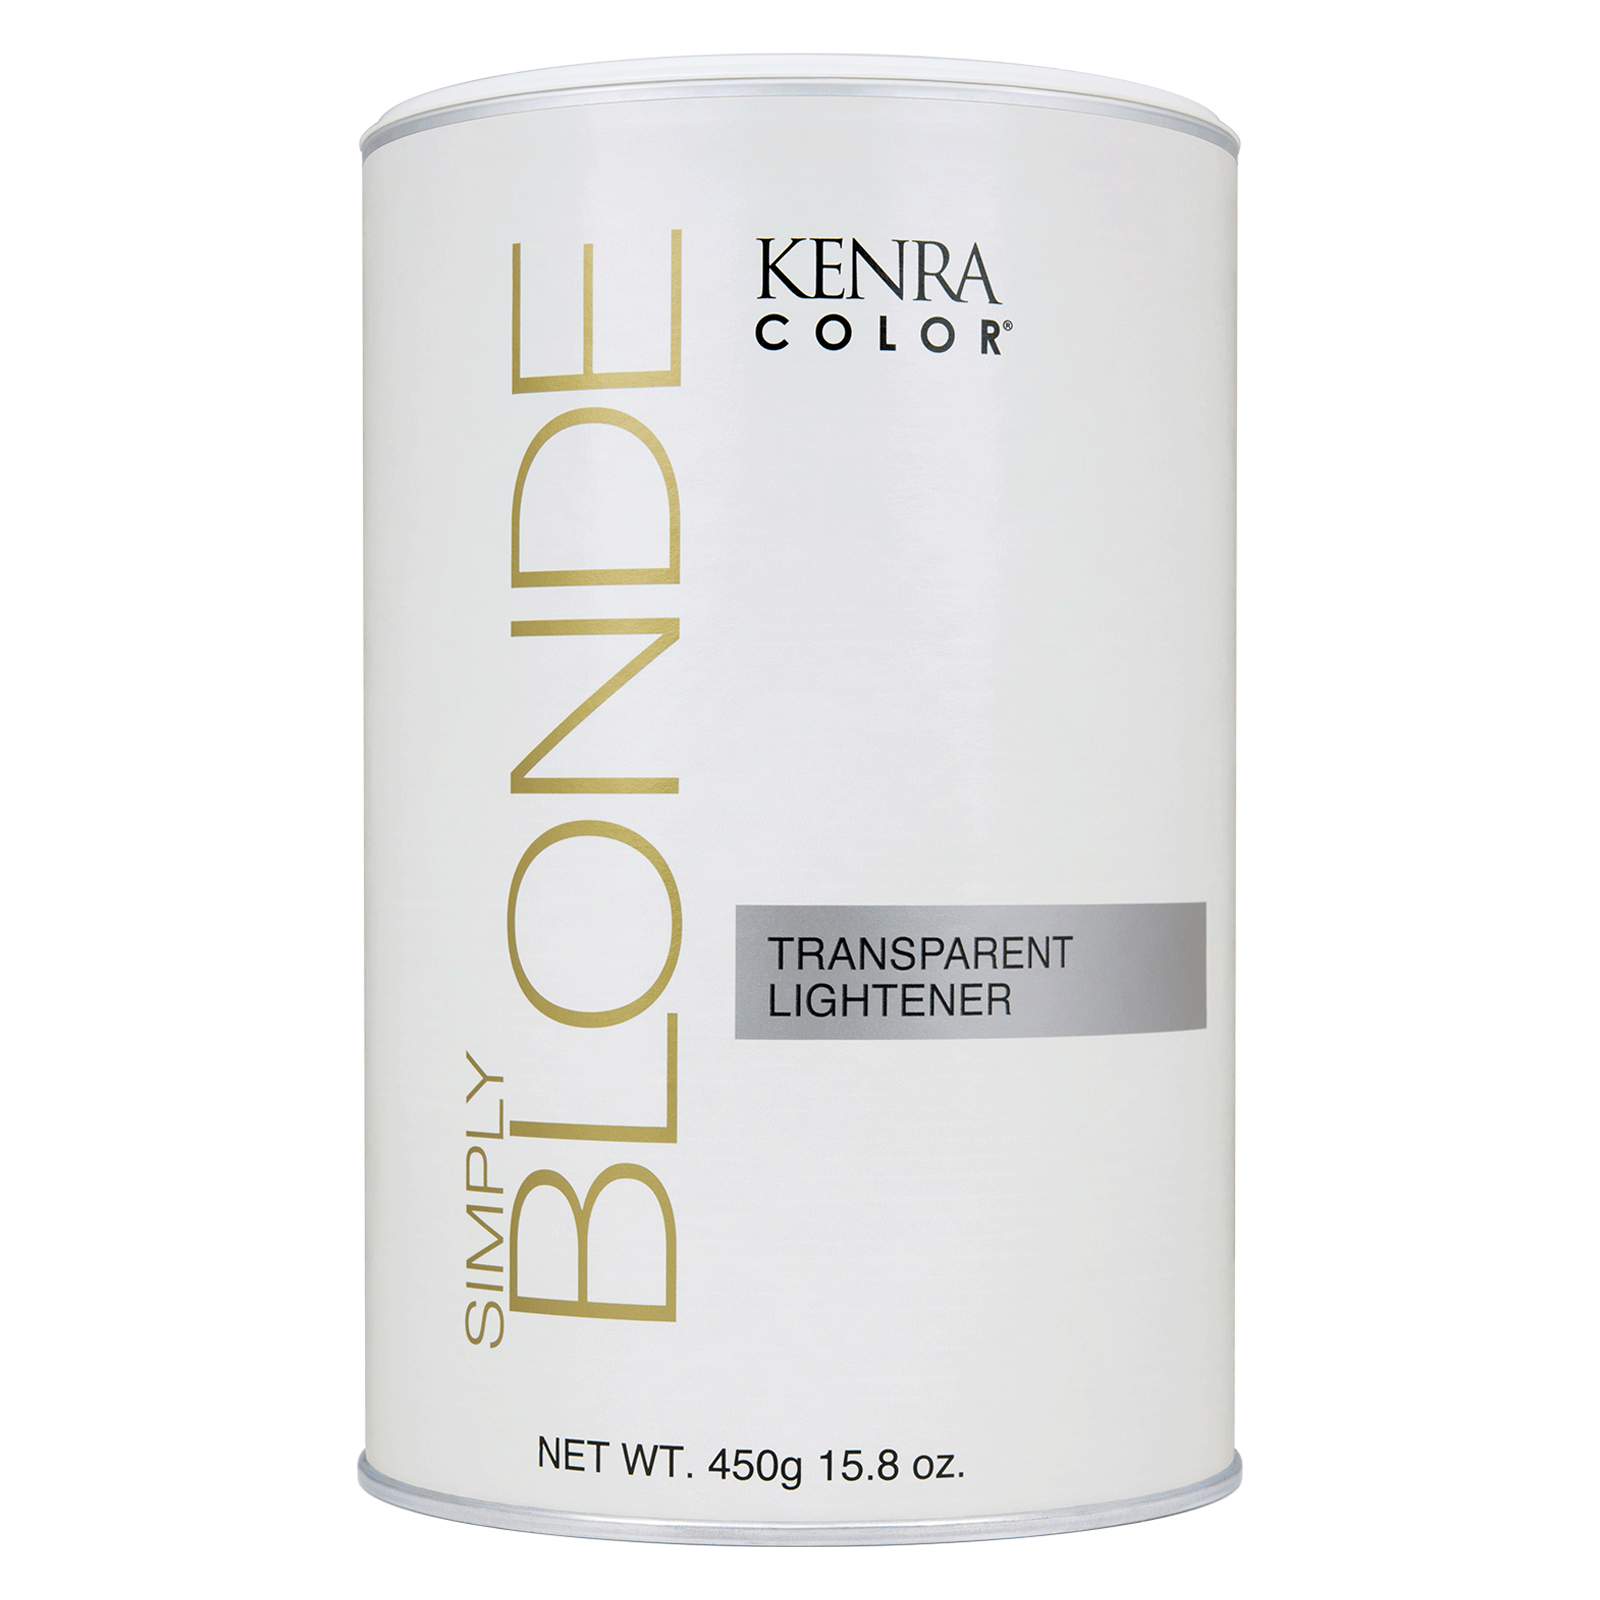 Simply Blonde Transparent Lightener